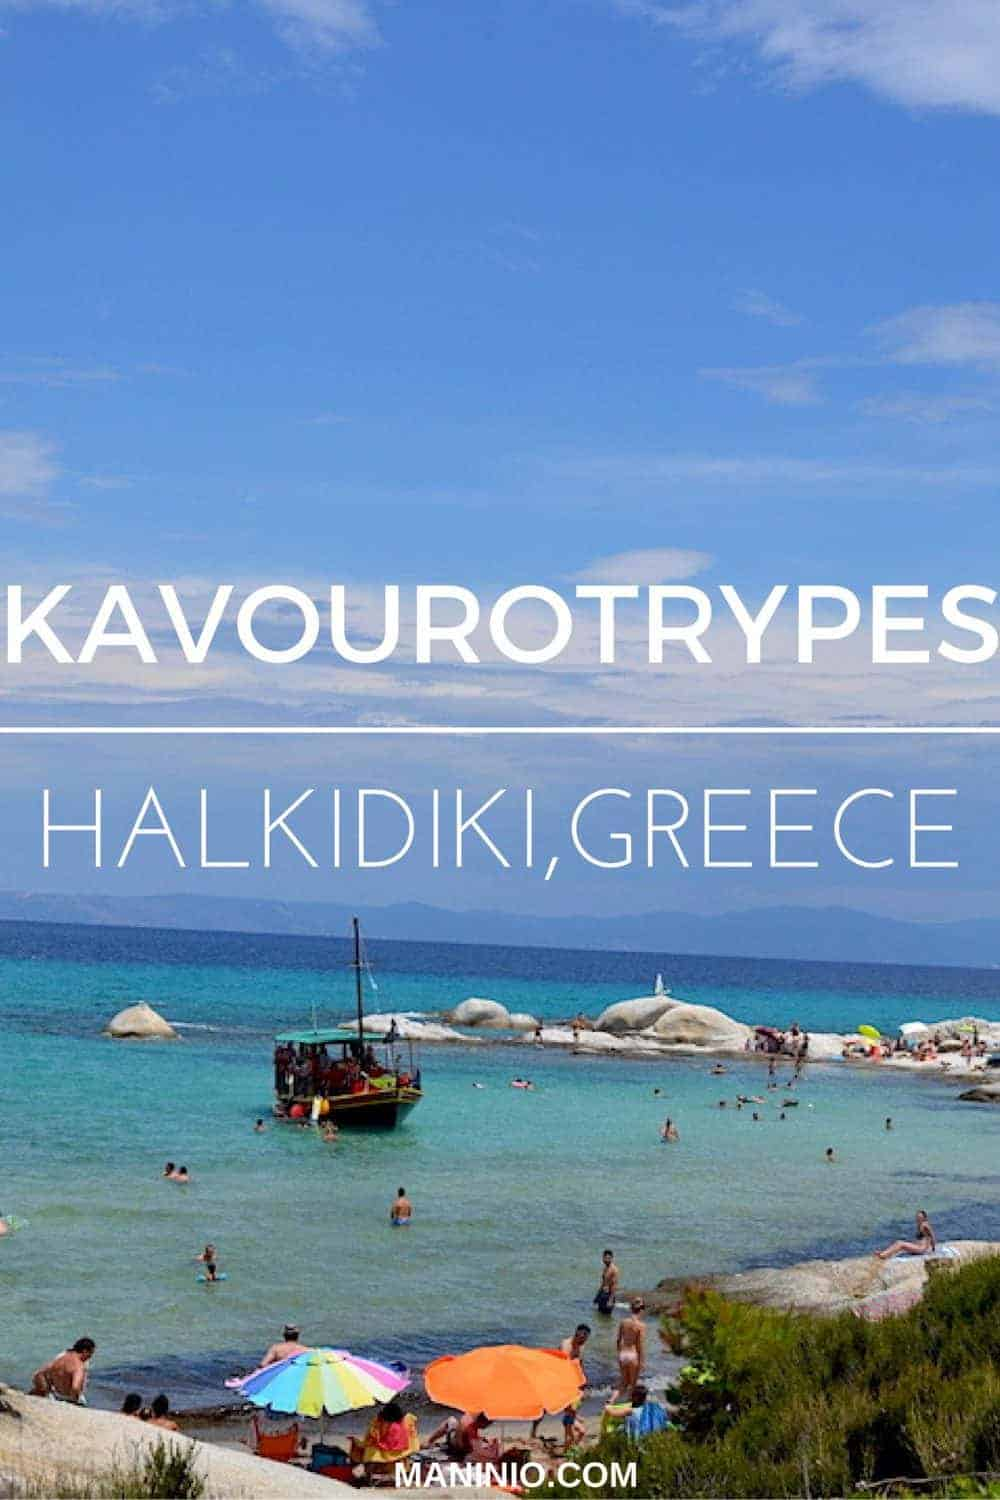 Kavourotrypes (Orange) Beach – Halkidiki, Greece